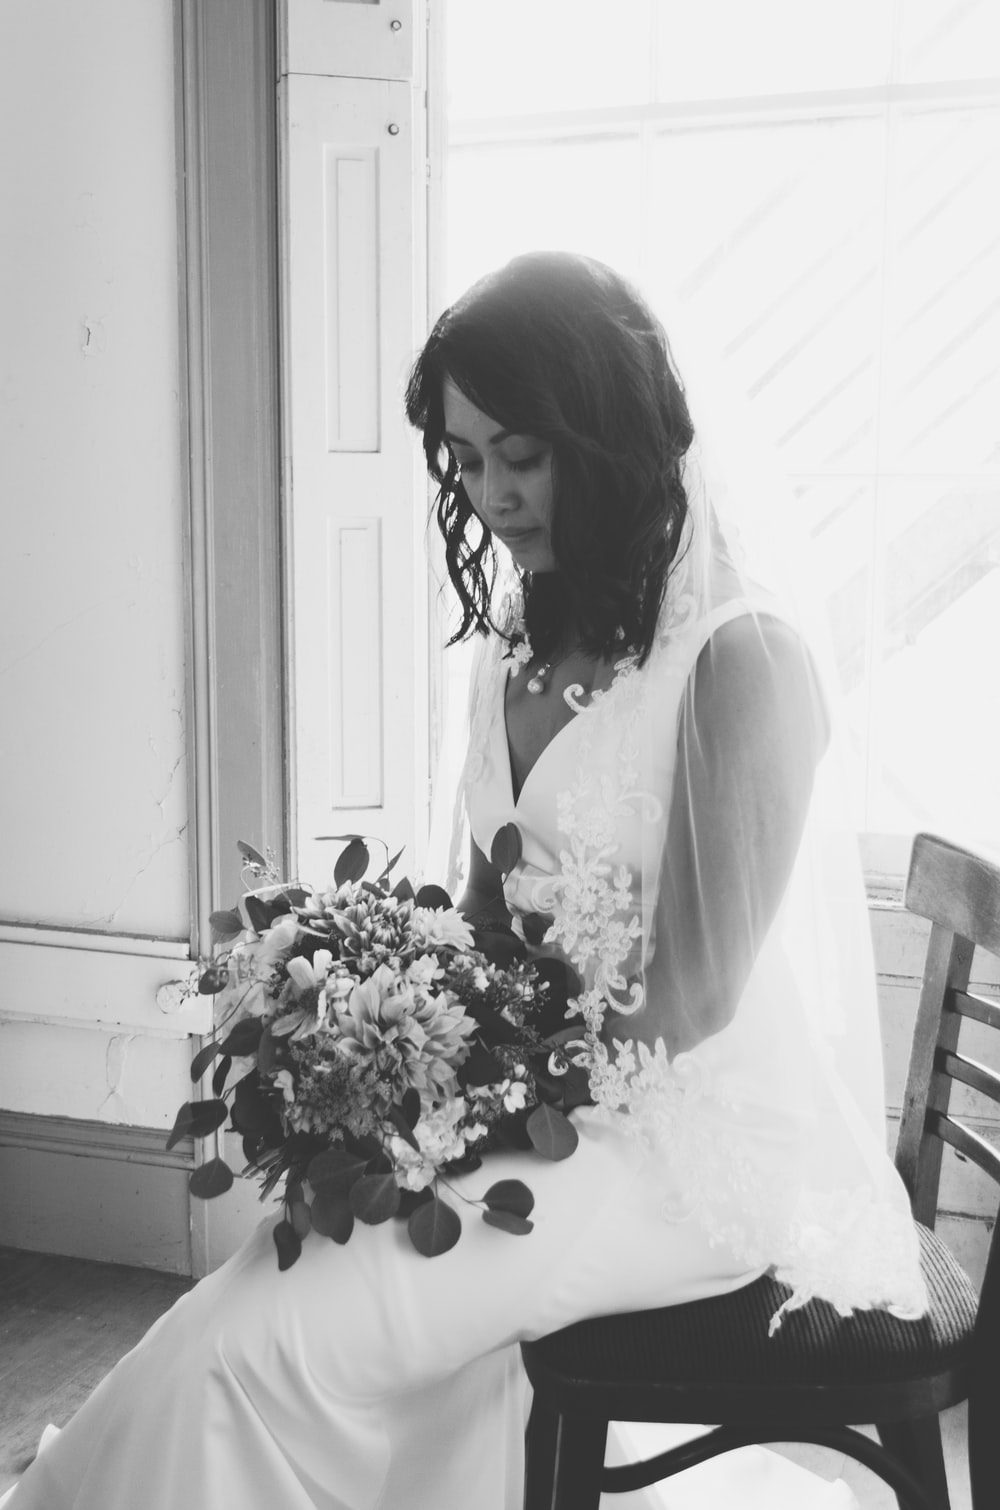 grayscale photography of woman wearing wedding dress